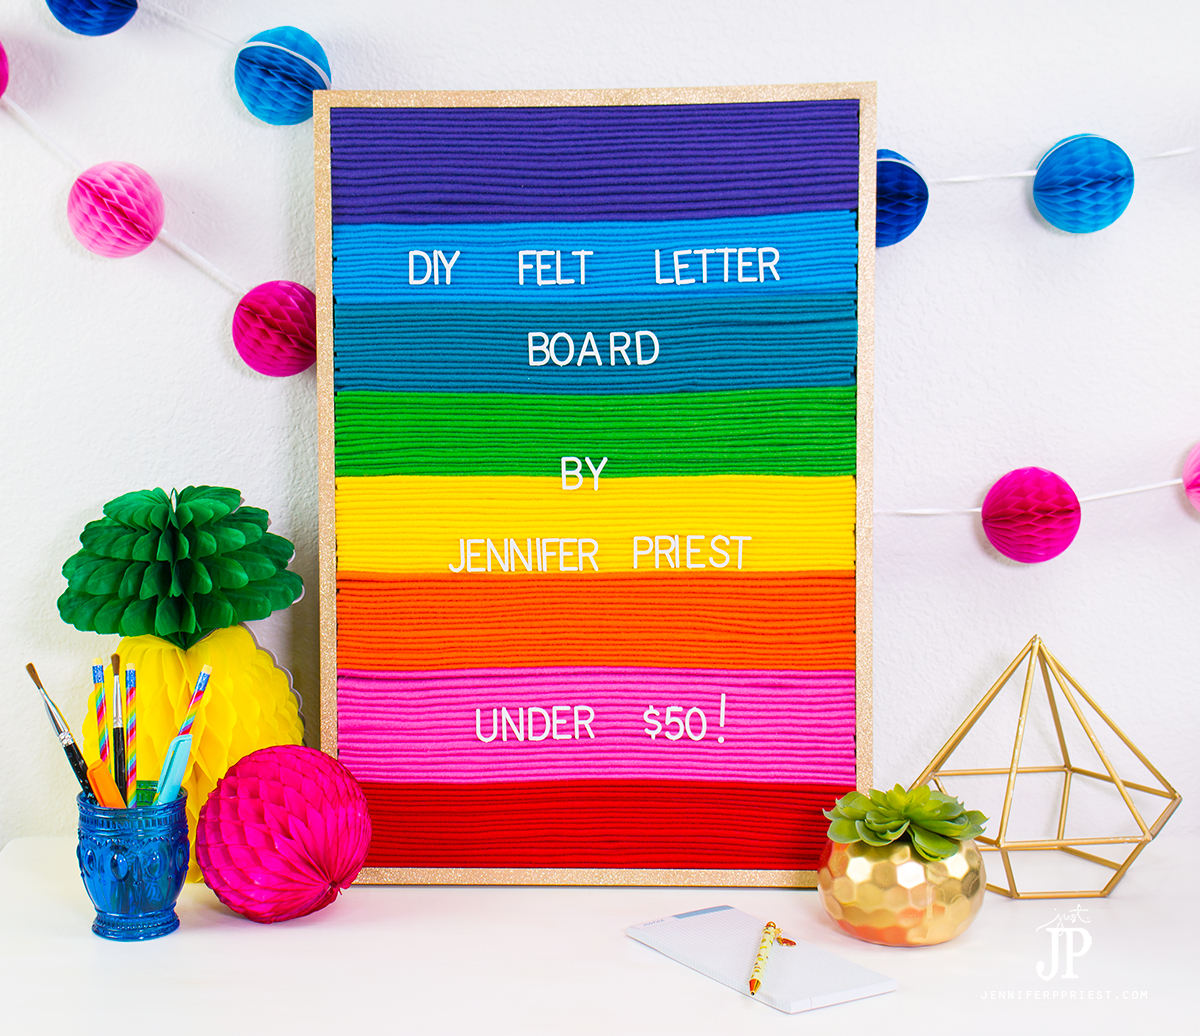 Diy felt letter board for Felt letter sign